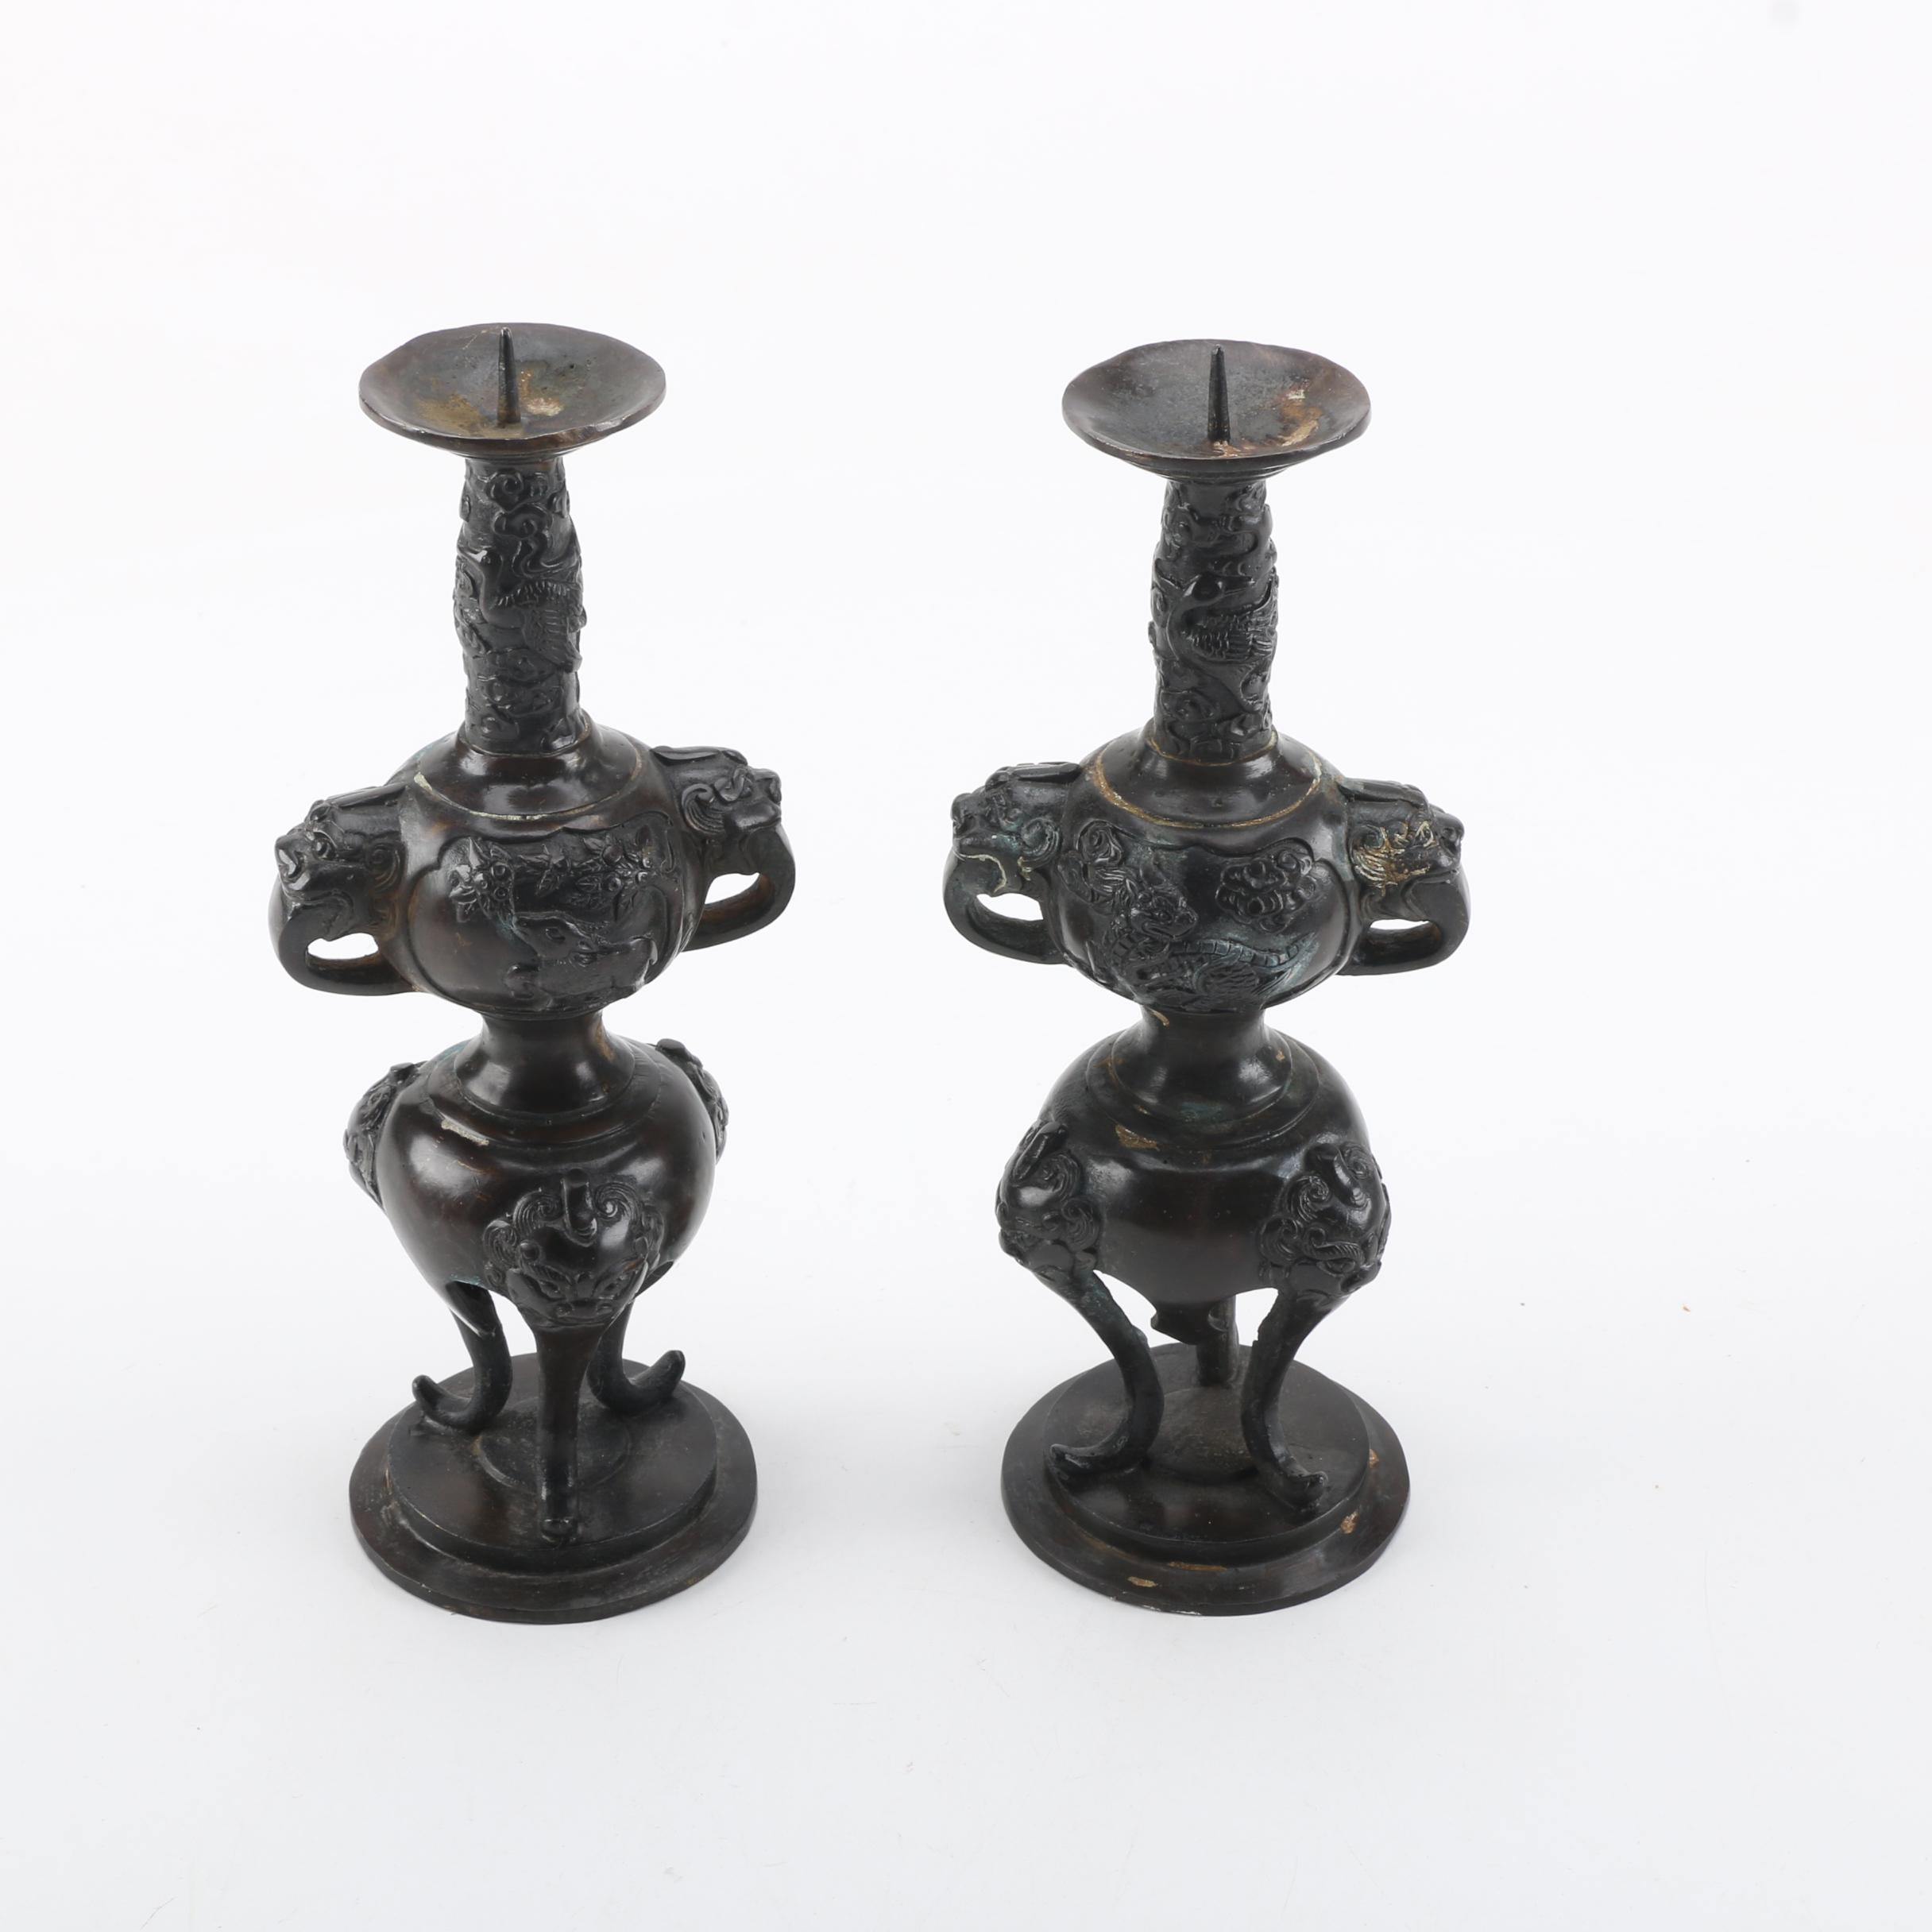 Chinese Candlesticks with Dragon Motif